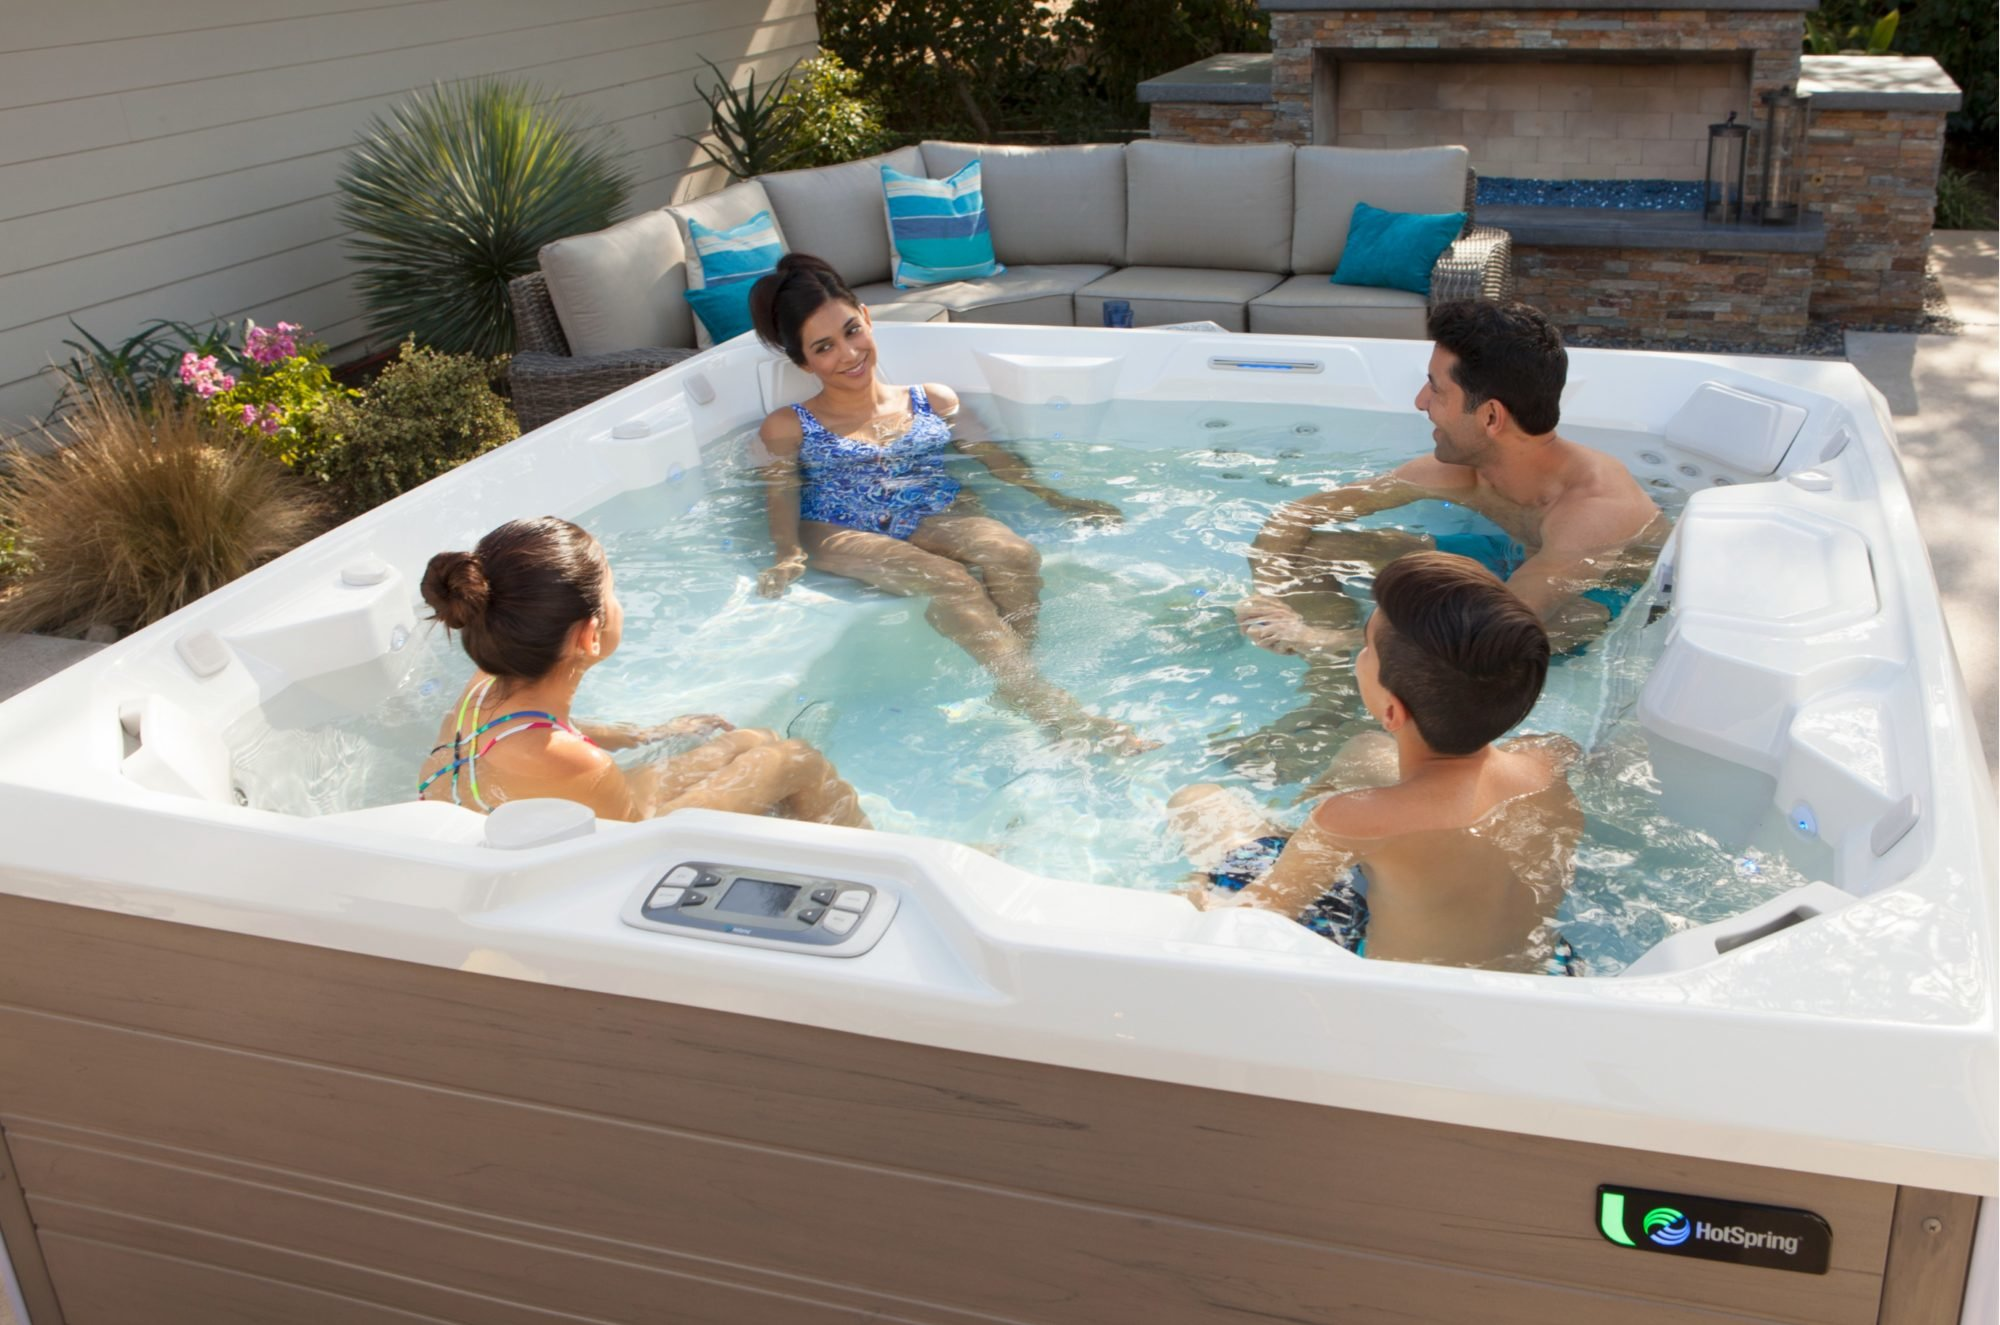 Jacuzzi Pool Bilder Aqua Pools And Spas Maryland Custom Pools Hot Tubs Service